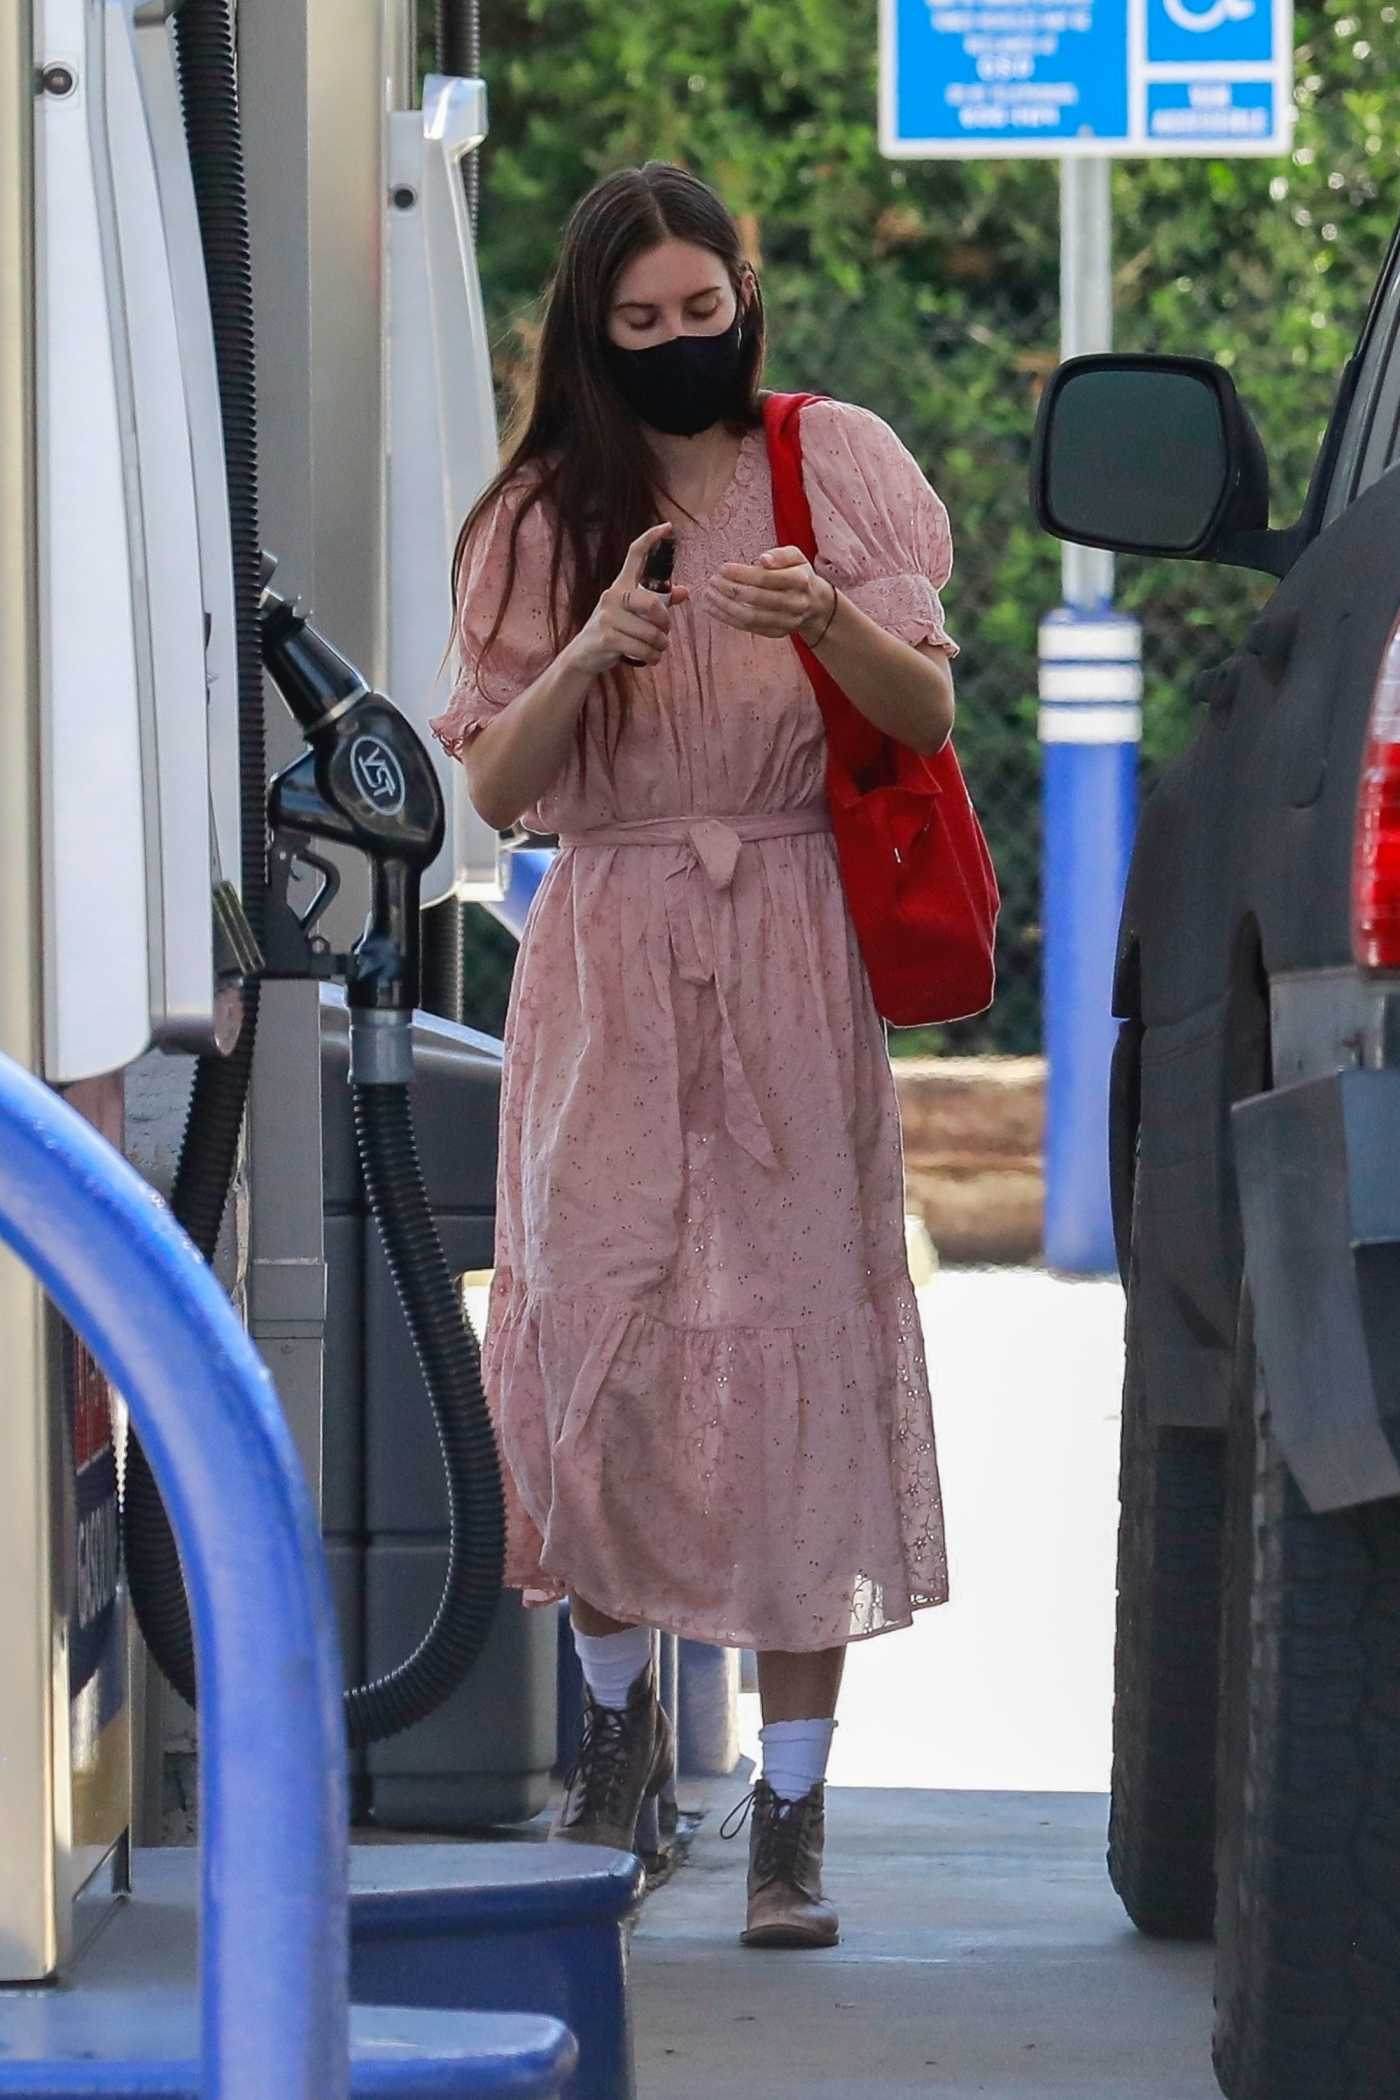 Scout Willis in a Pink Dress Was Seen at a Gas Station in Ojai 07/27/2020